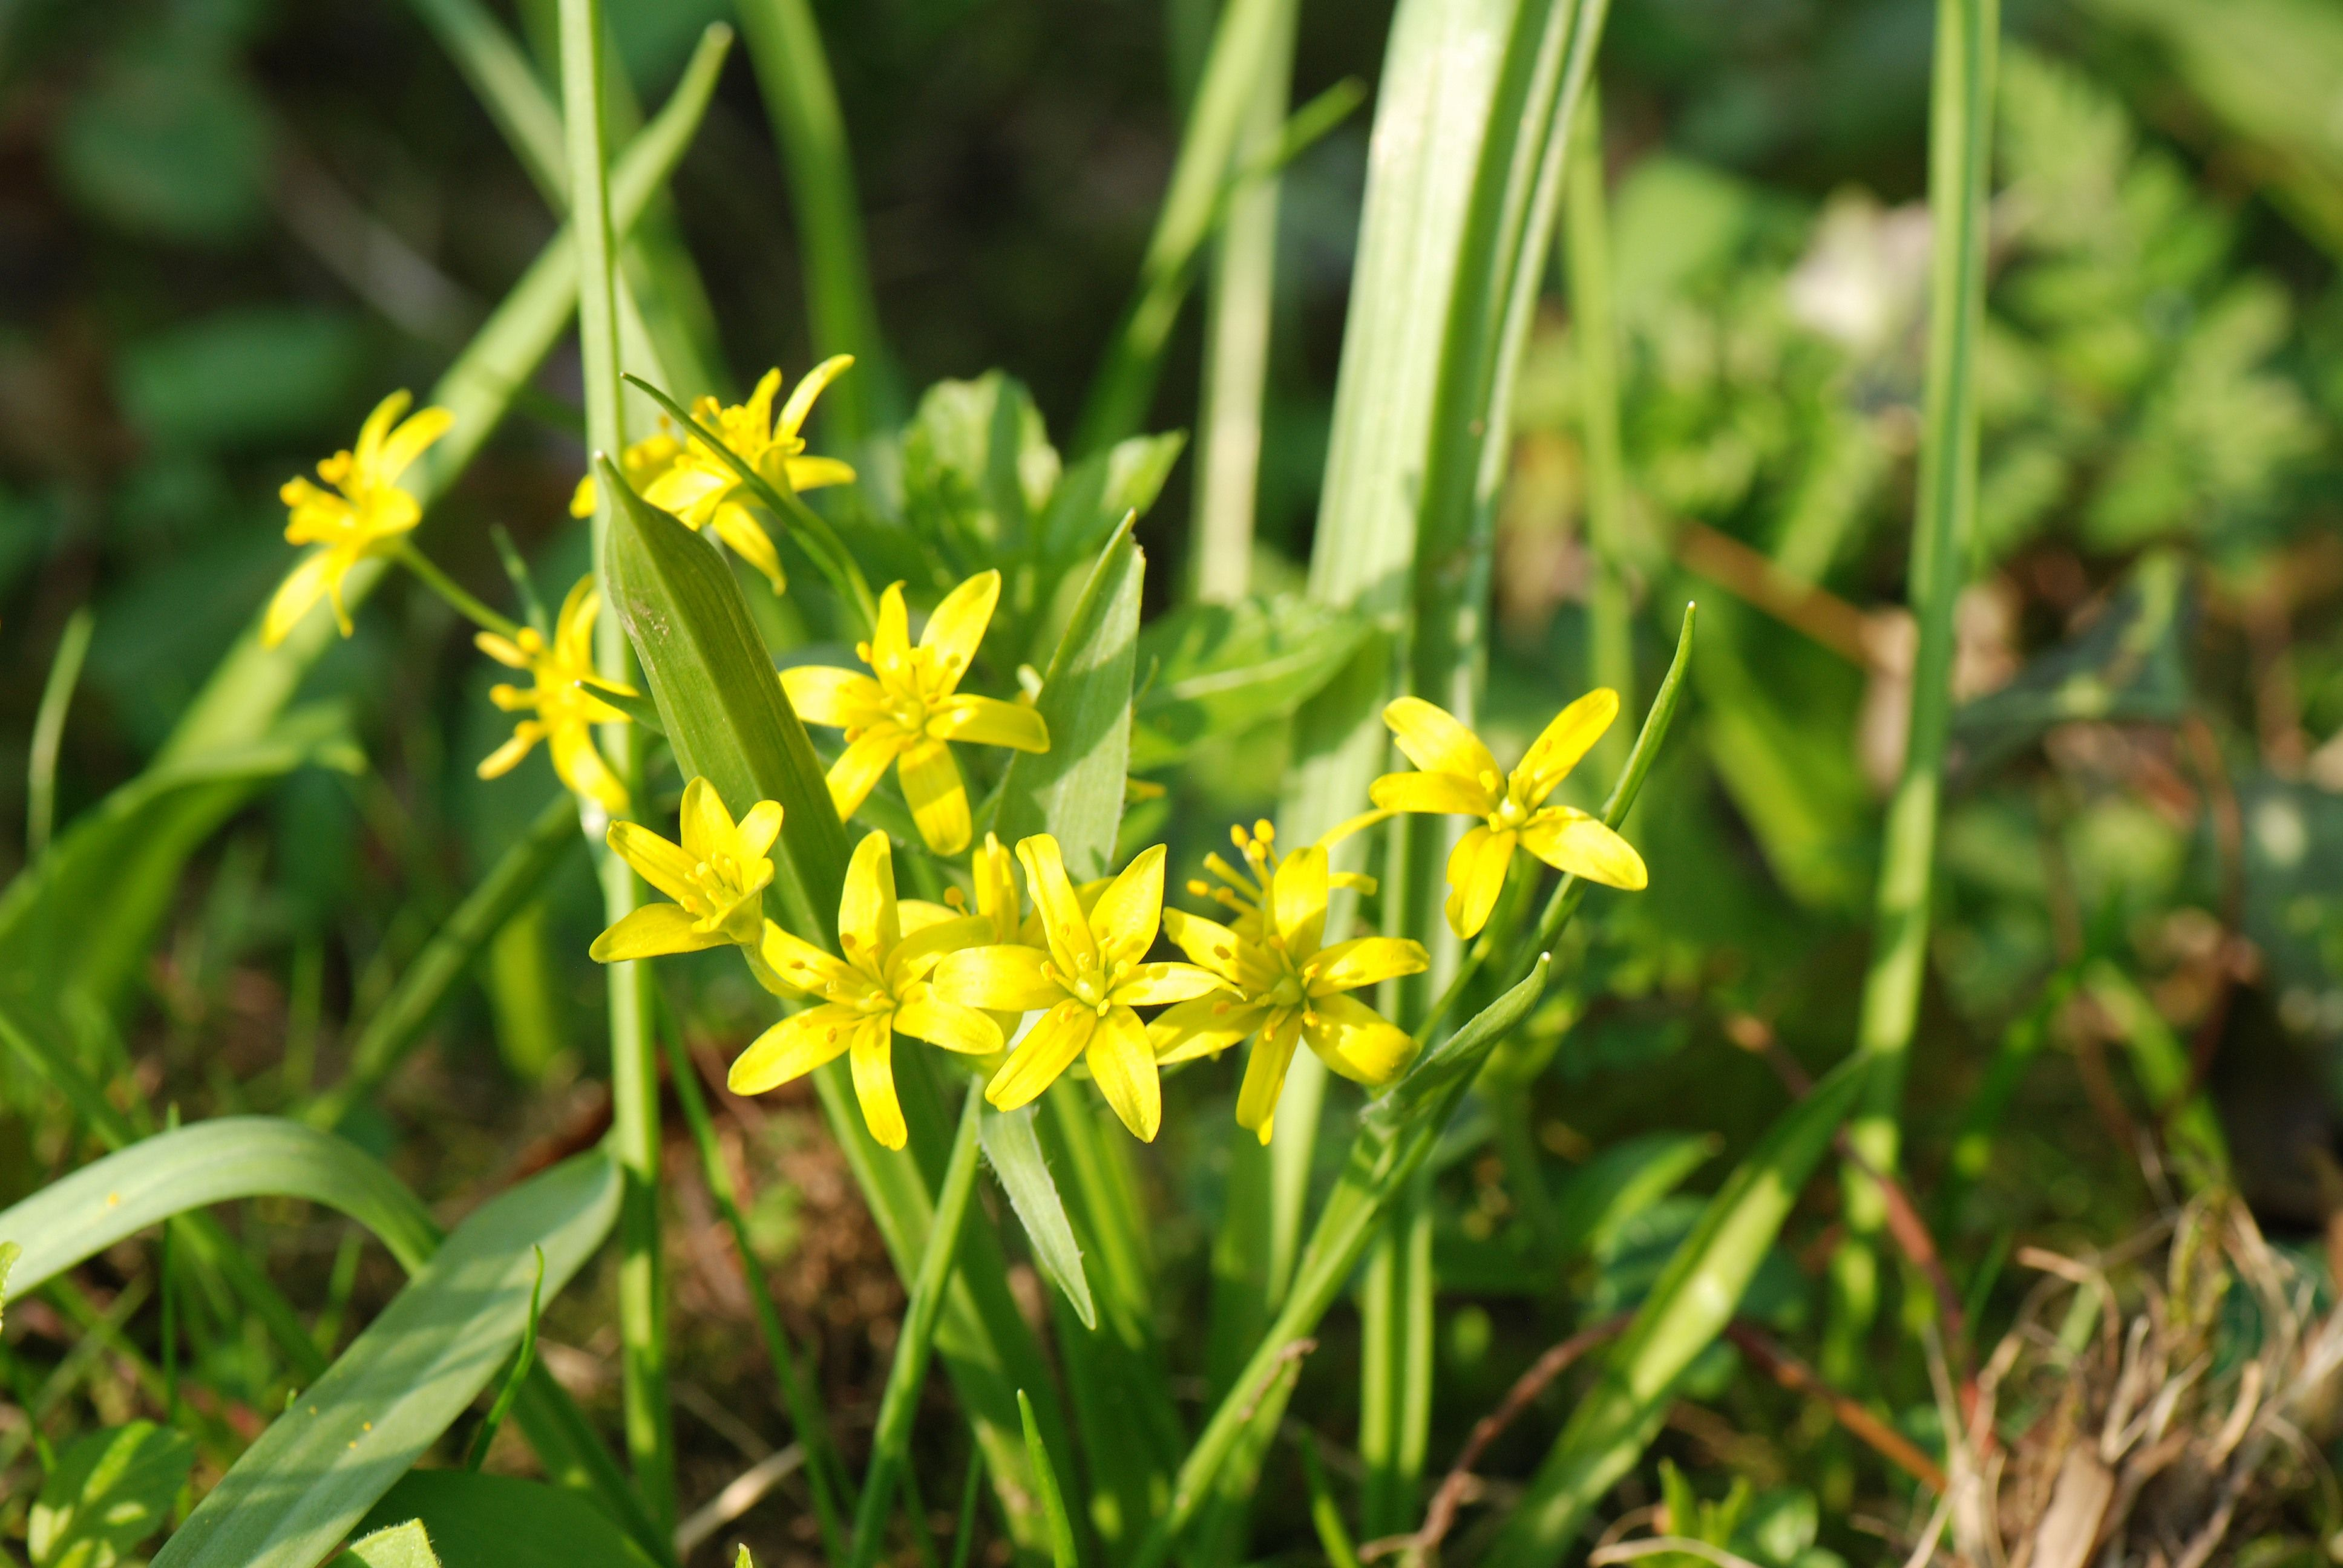 The Yellow Star of Bethlehem enjoys the damp conditions of the river bank but it is very short flowered so timing is critical in order to see it.